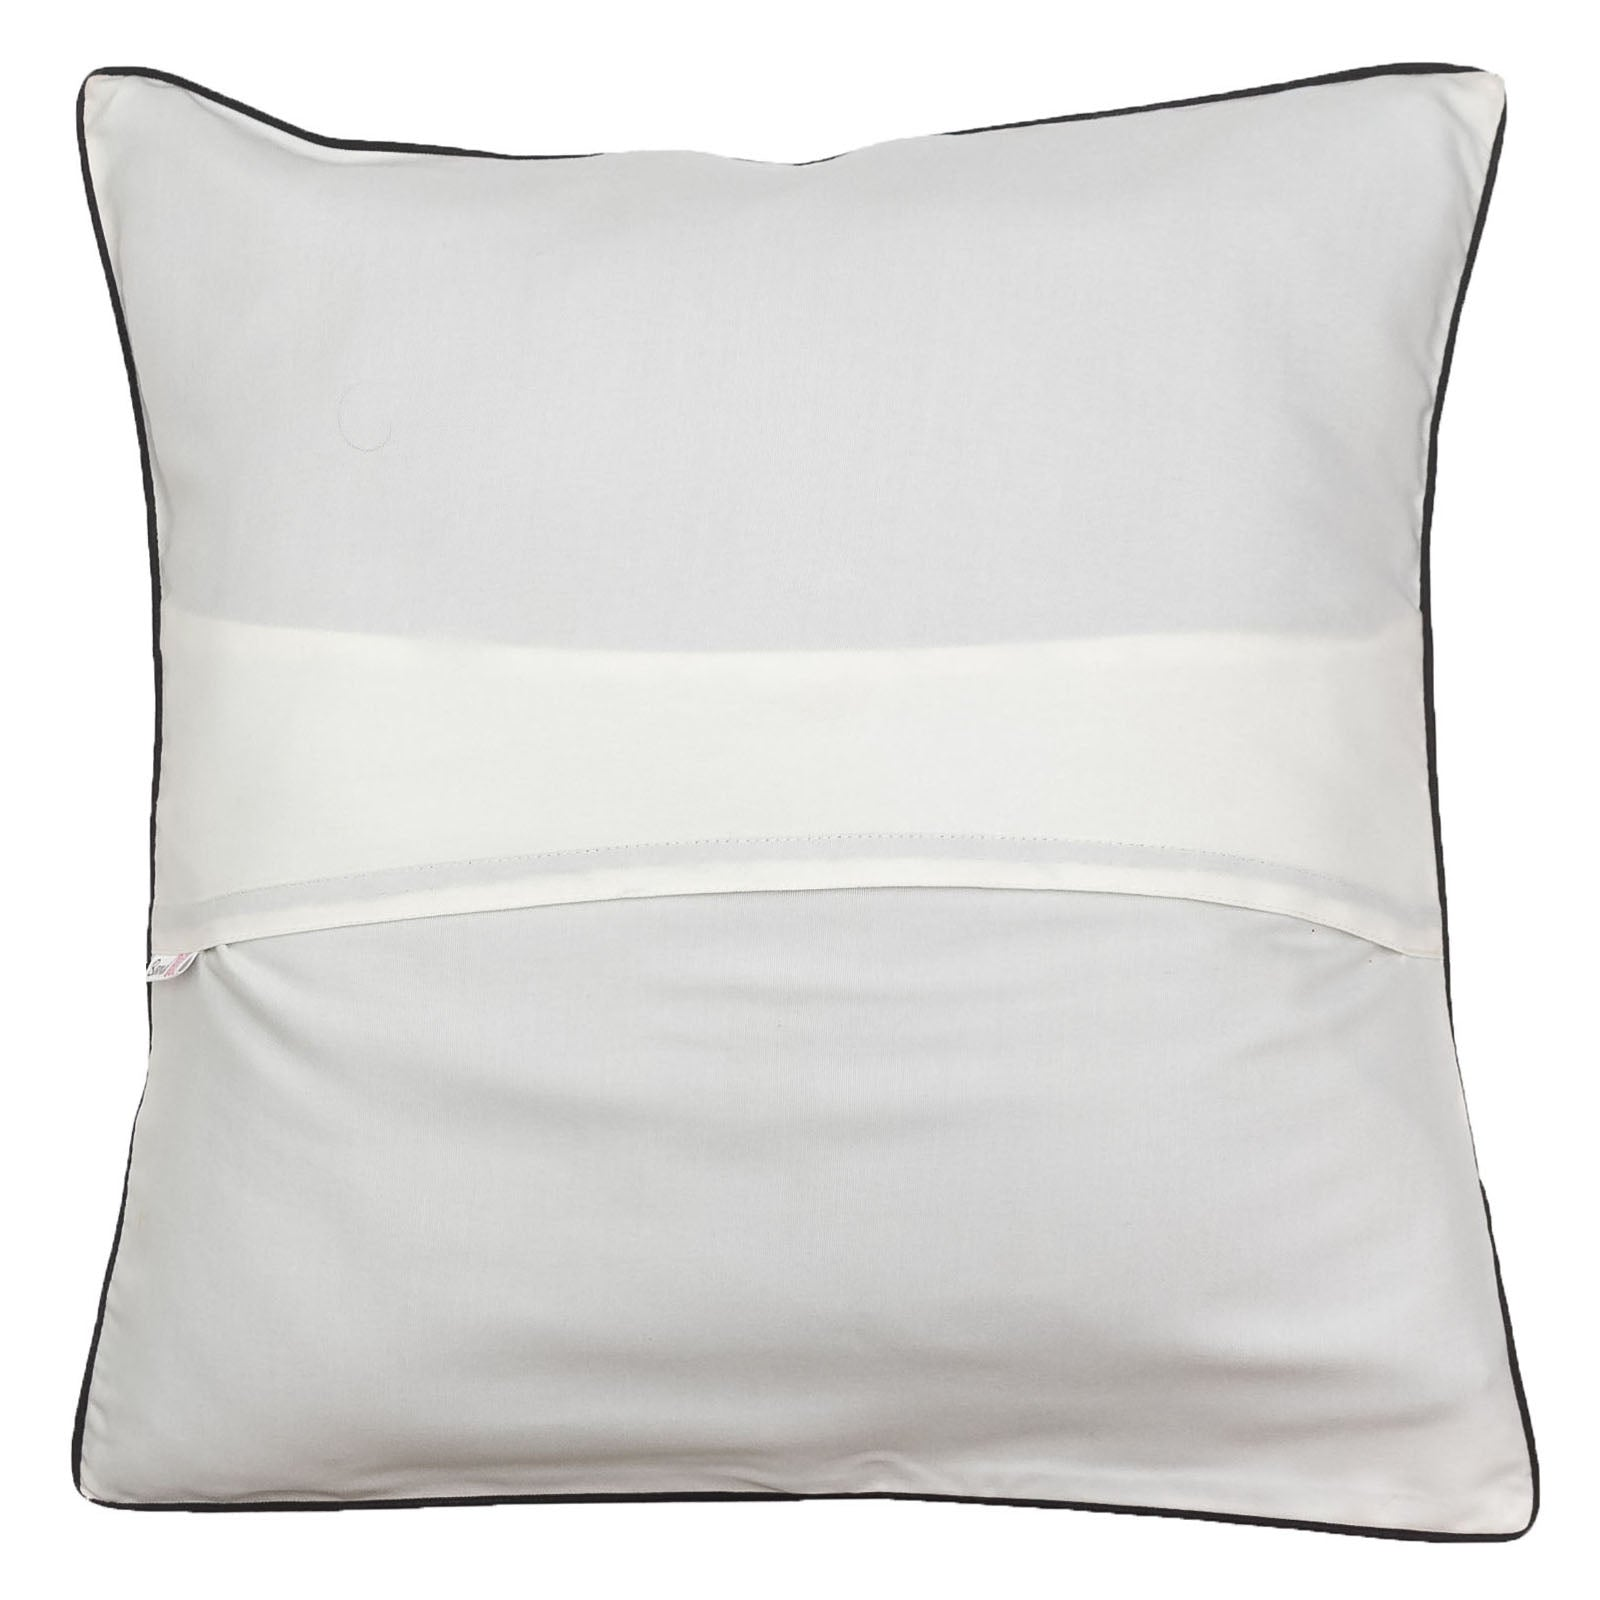 Inhale And Exhale Cushion Cover